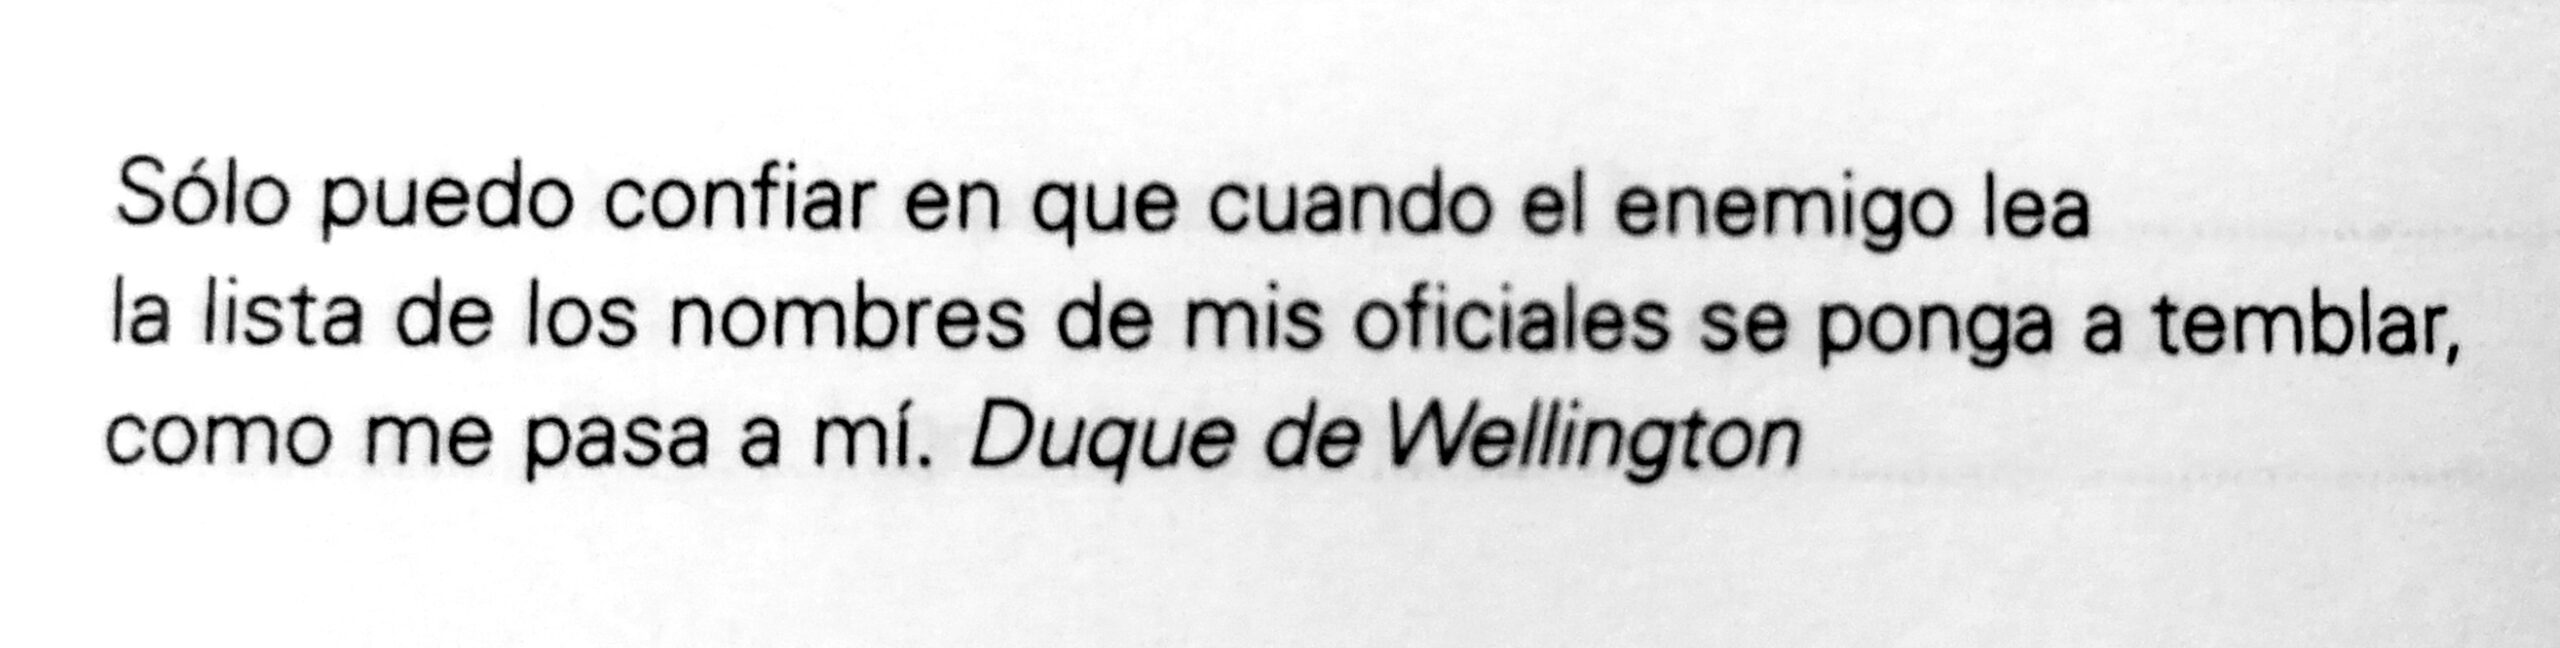 Frase del Duque de Wellington